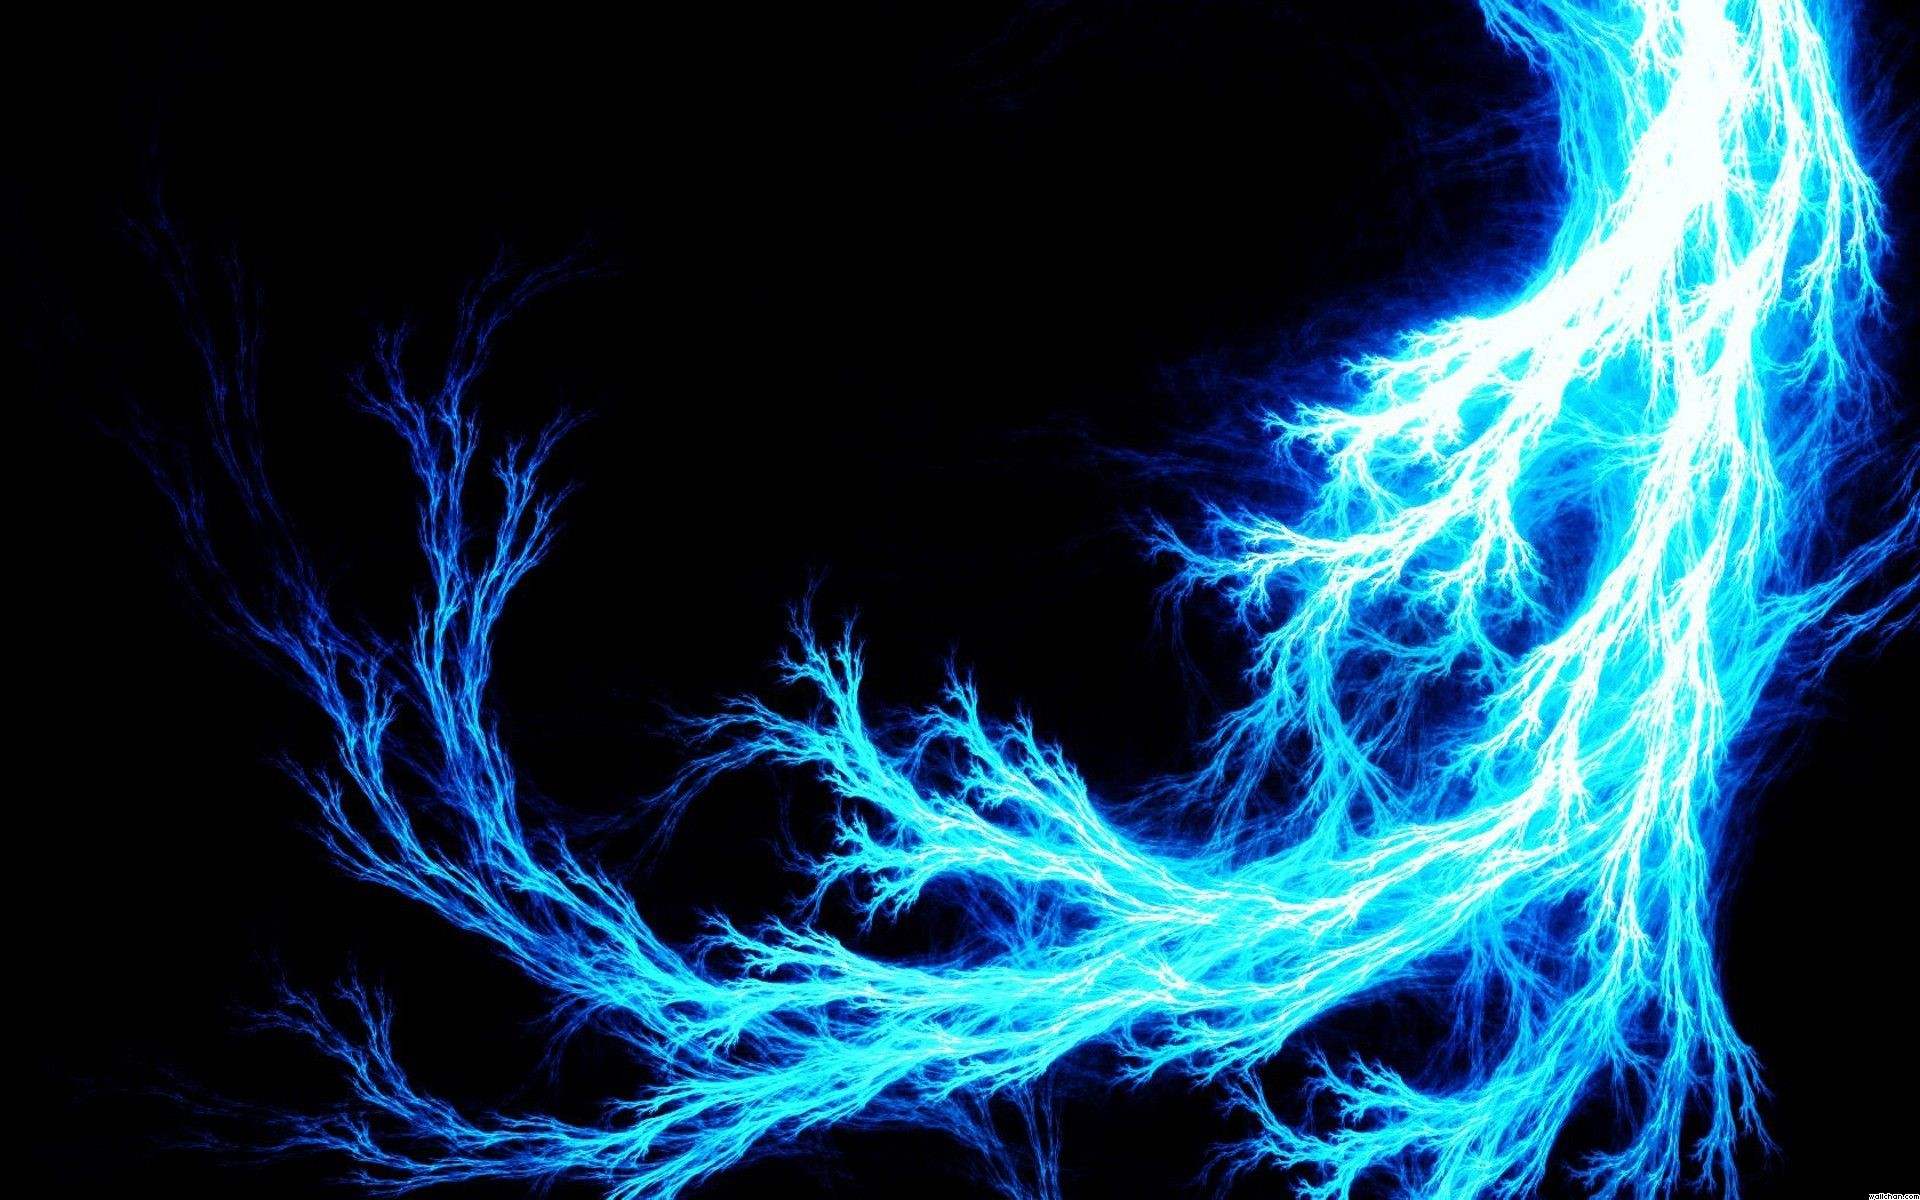 Blue Lightning Wallpaper 53 images 1920x1200